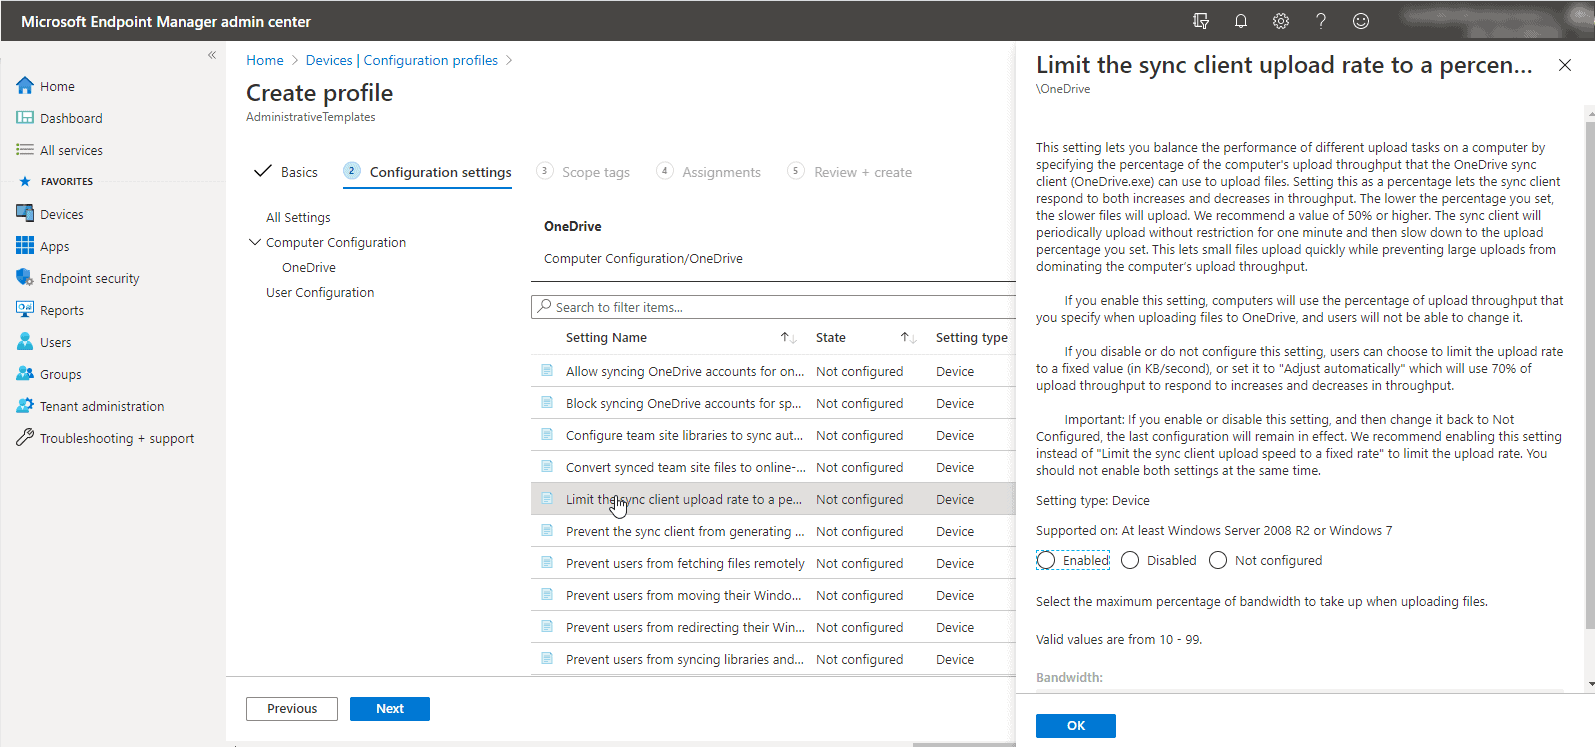 OneDrive policies in Microsoft Endpoint Manager